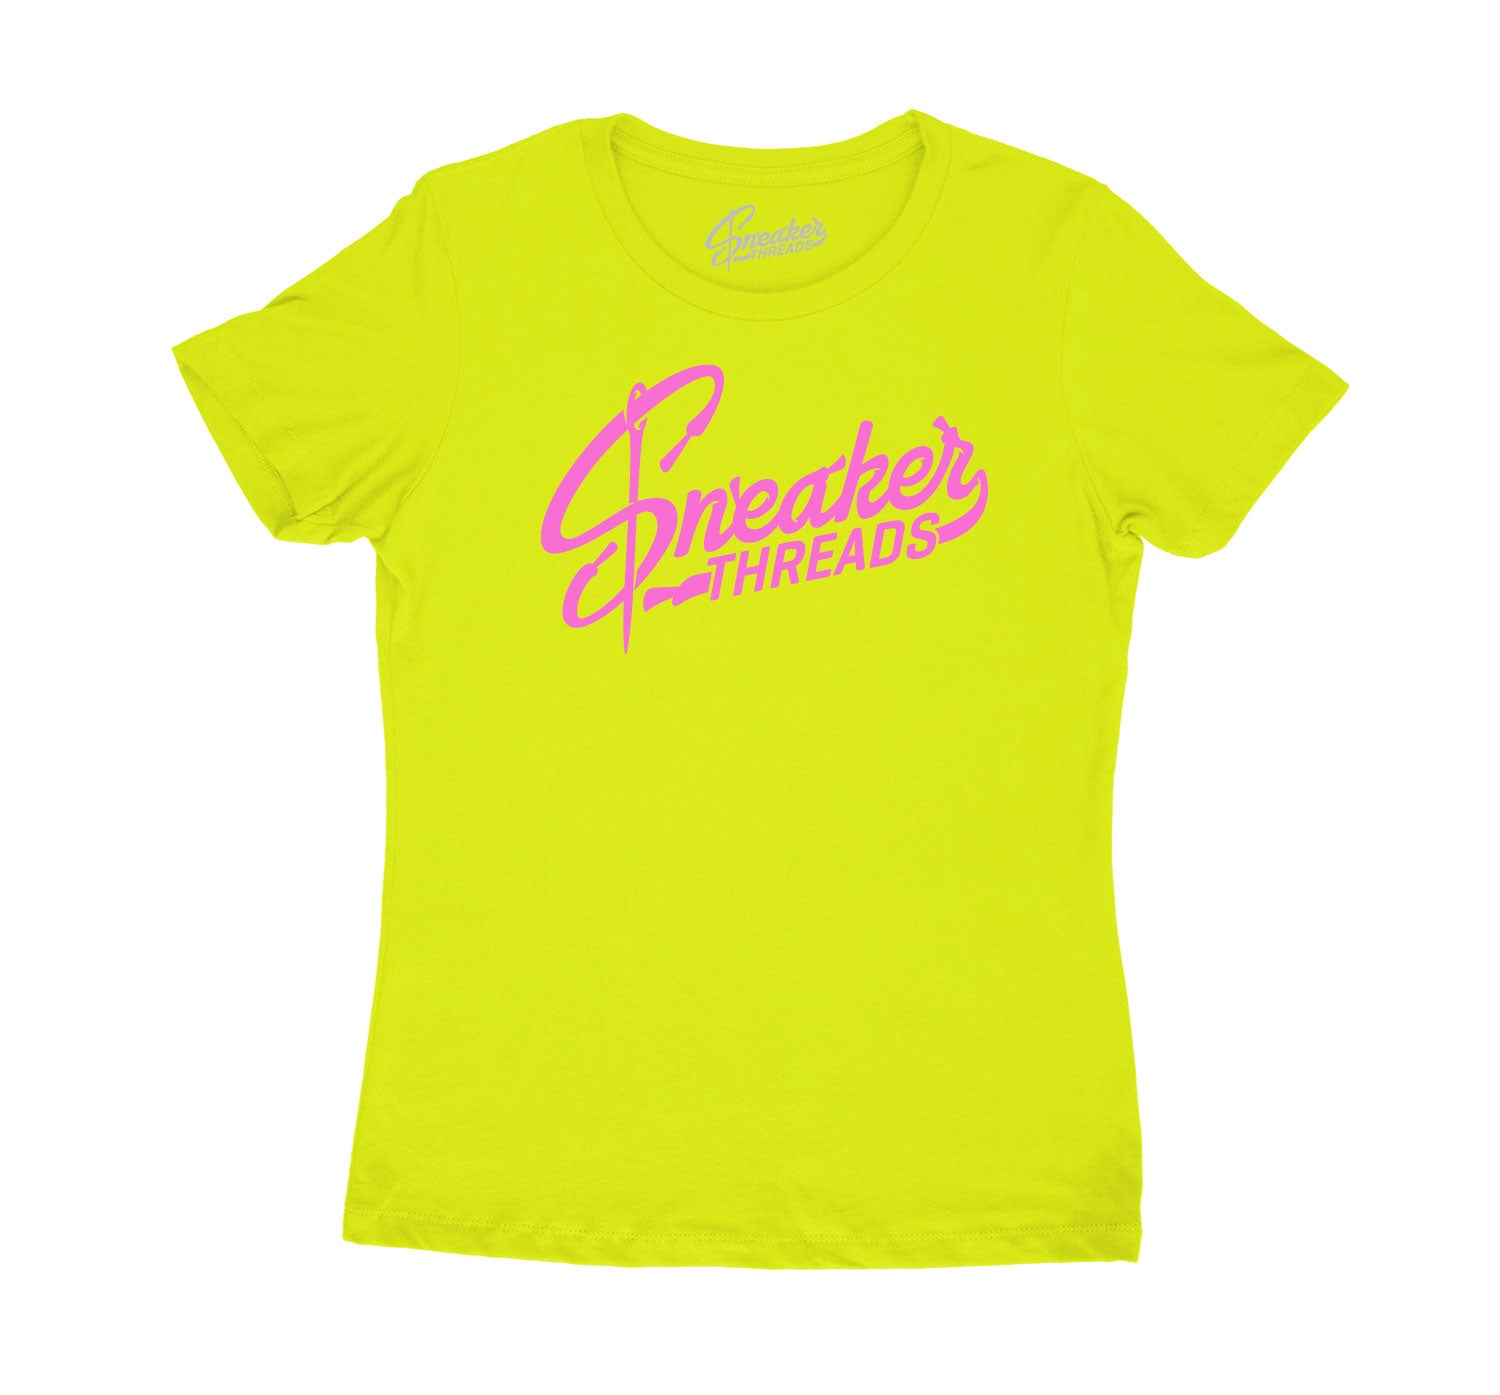 Jordan 4 Lemon Venom sneaker collection matching with  womens t shirt collection